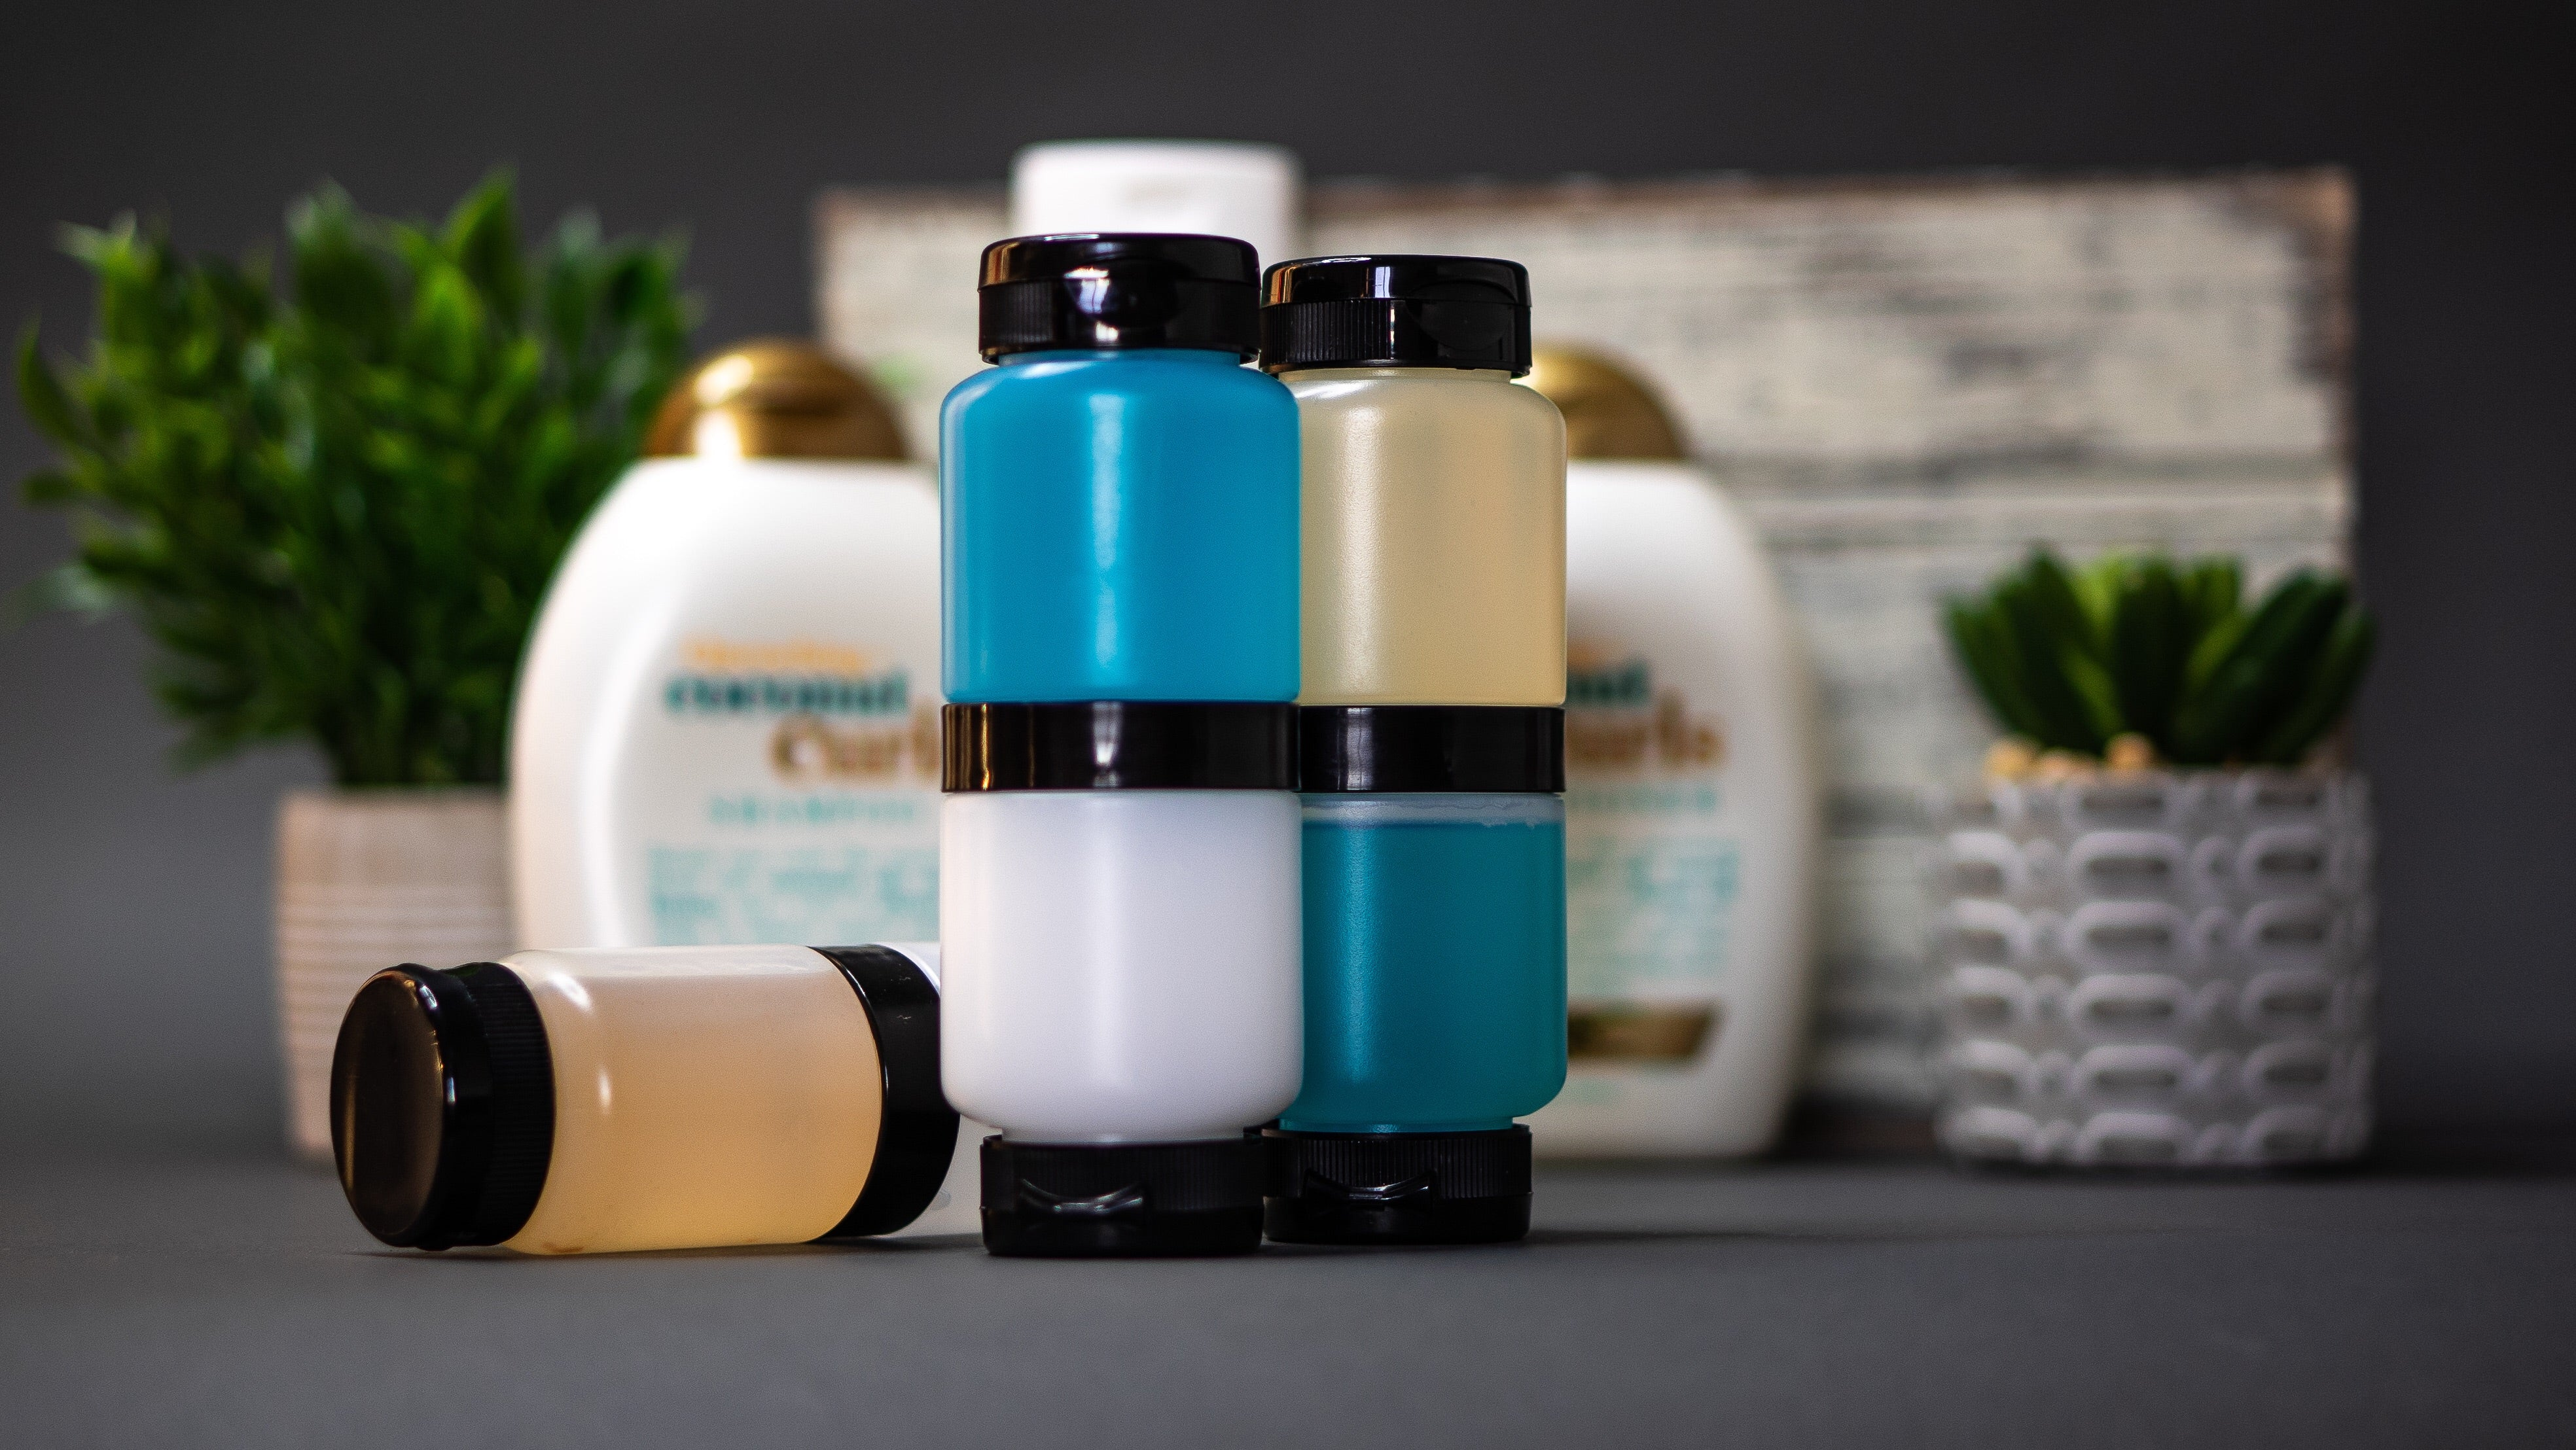 The Duet Bottle (3 PACK with Travel Case)